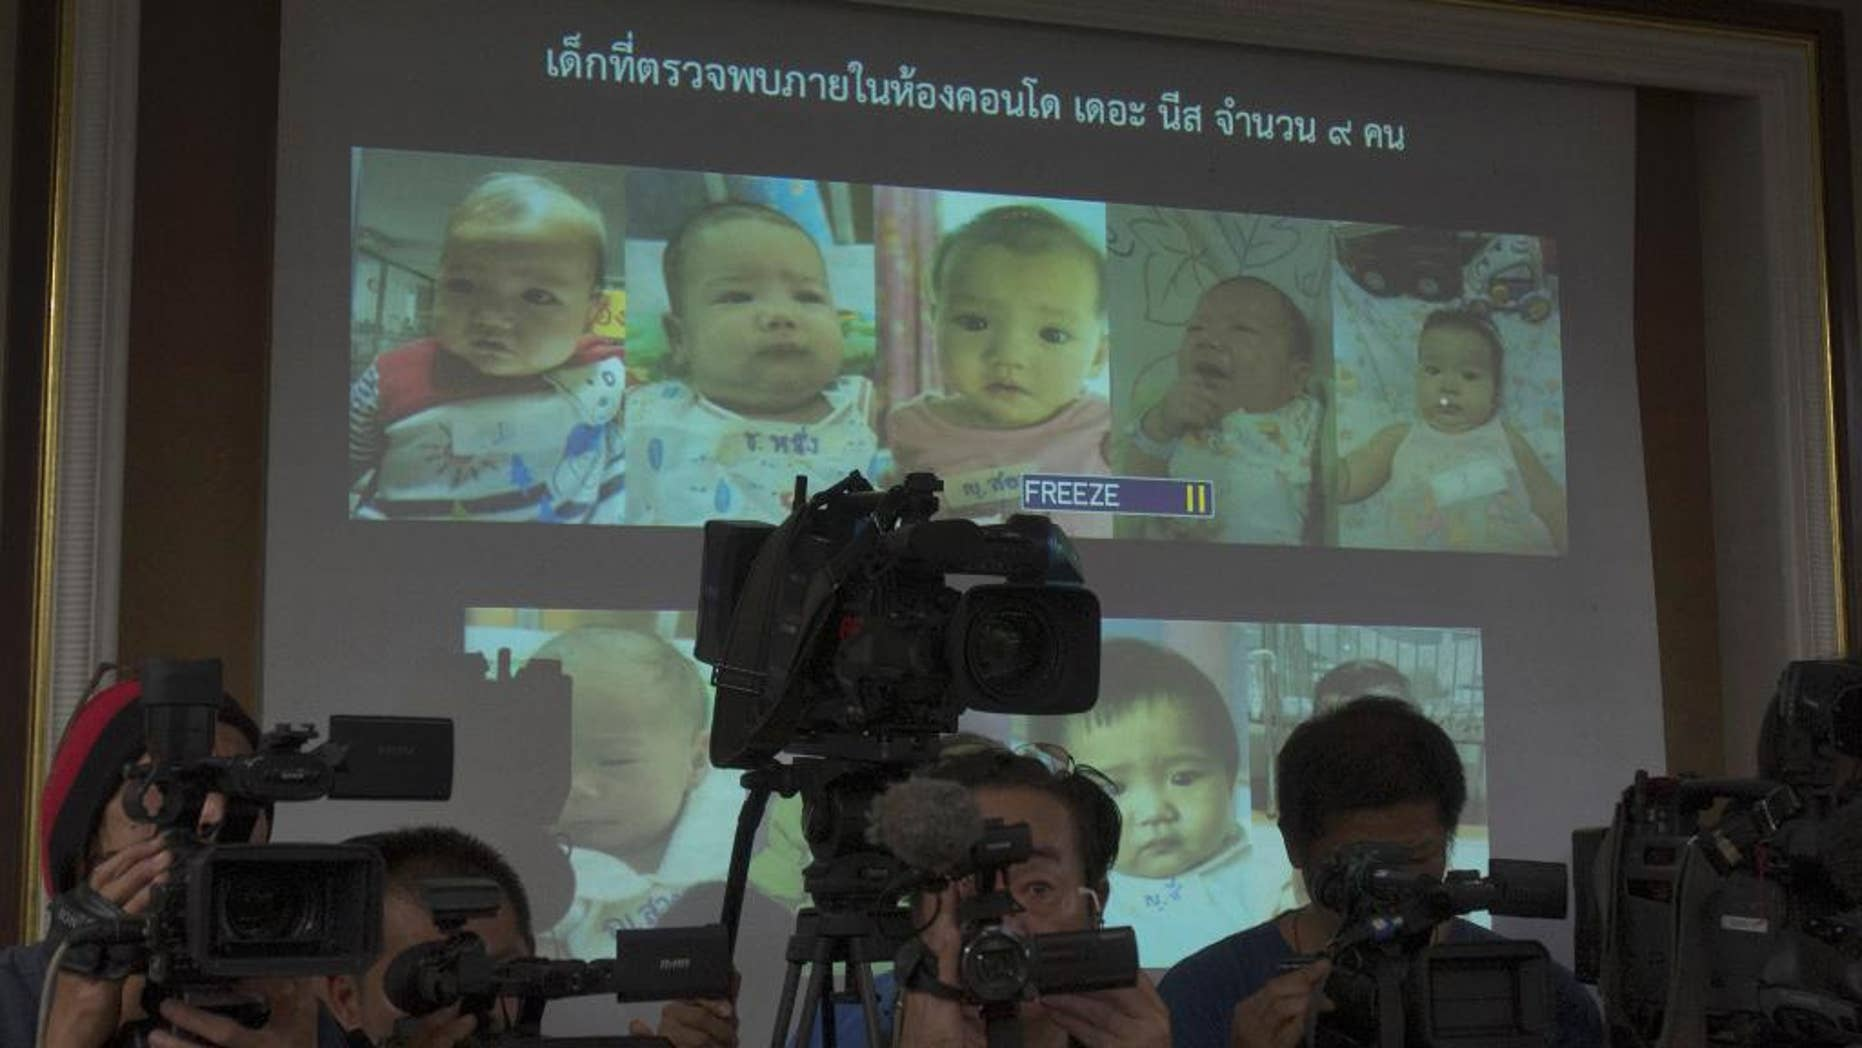 FILE - In this Tuesday, Aug. 12, 2014 file photo, Thai police display pictures of surrogate babies born to a Japanese man who is at the center of a surrogacy scandal during a press conference at the police headquarters in Chonburi, Thailand. A string of recent scandals has lifted a lid on Thailand's largely unregulated commercial surrogacy industry, which has been around for over a decade.  (AP Photo/Sakchai Lalit)